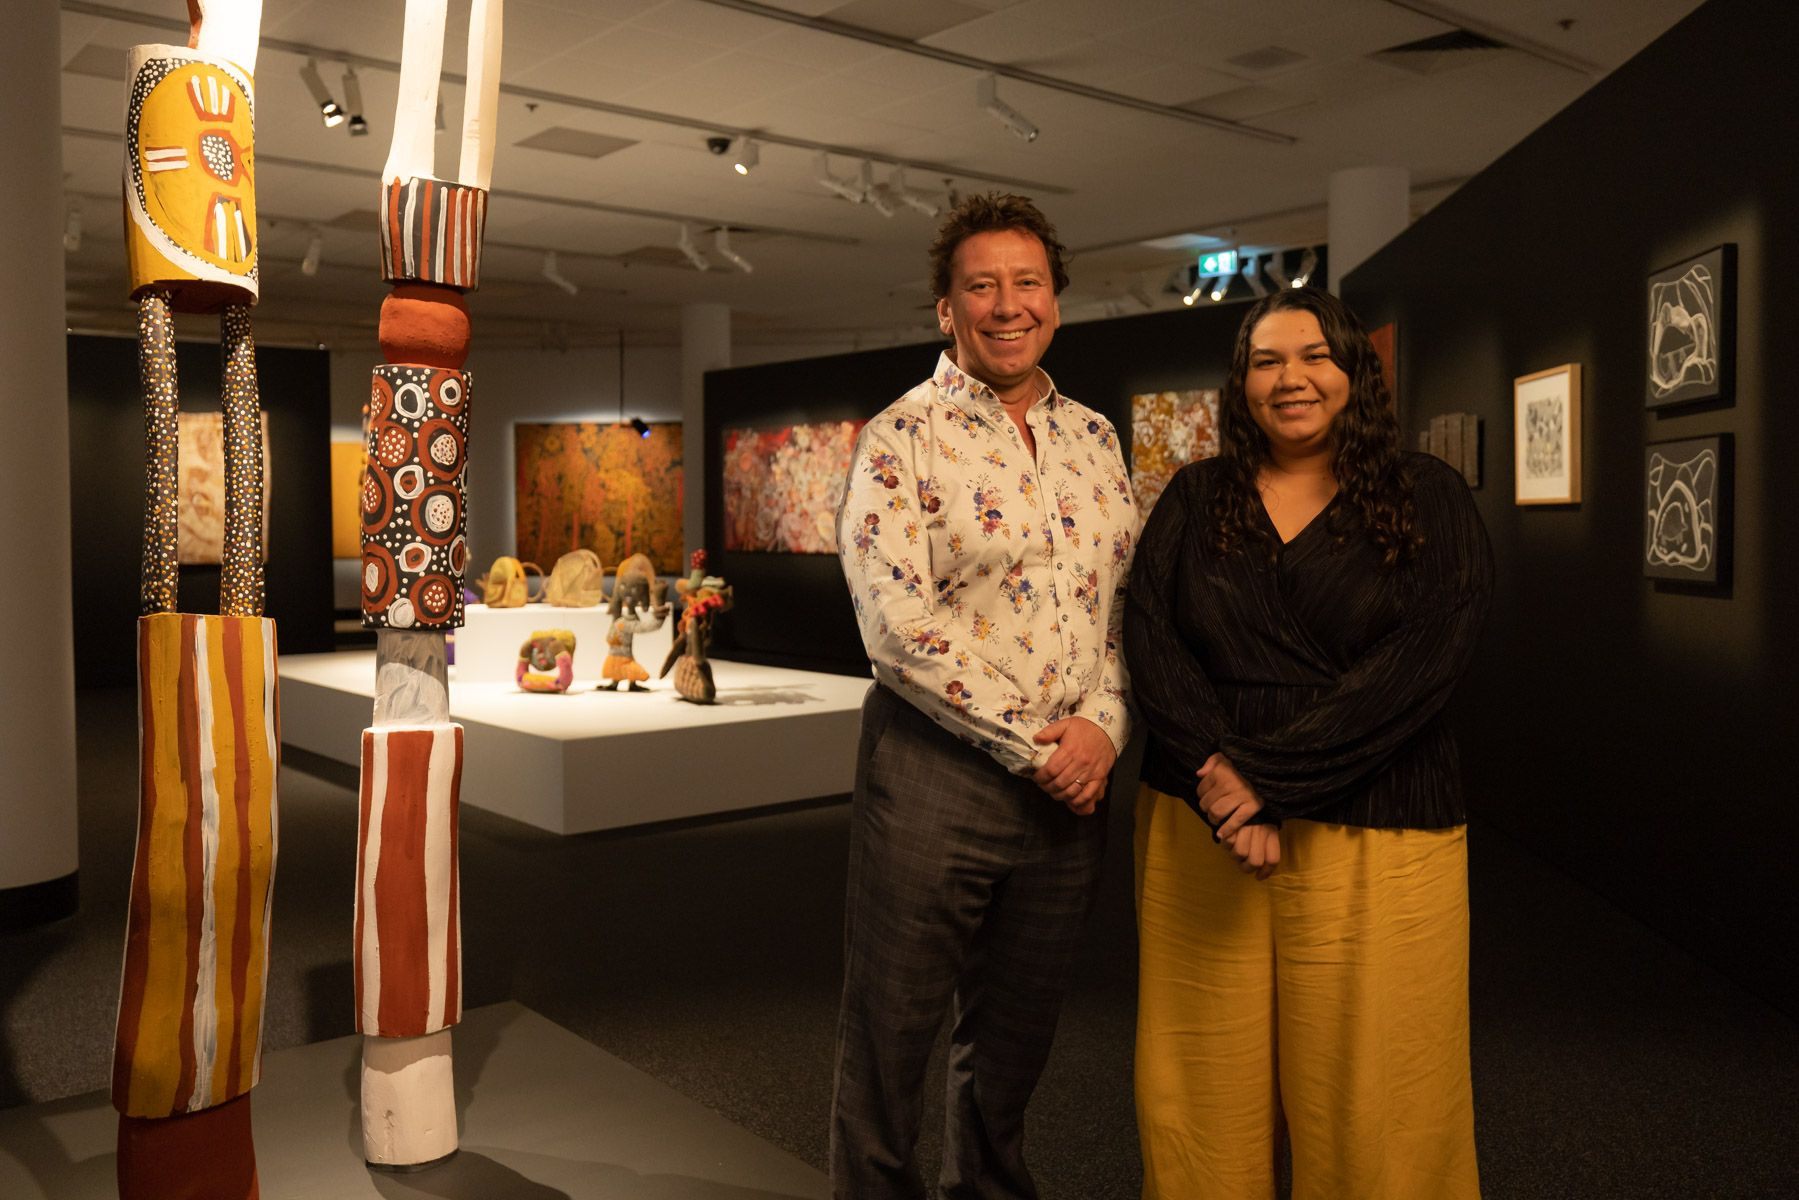 MAGNT Director Marcus Schutenko and MAGNT Curator of Aboriginal Art and Material Culture, Rebekah Raymond, standing alongside •Tutini (Pukumani poles) 2020 by artist Timothy Cook.